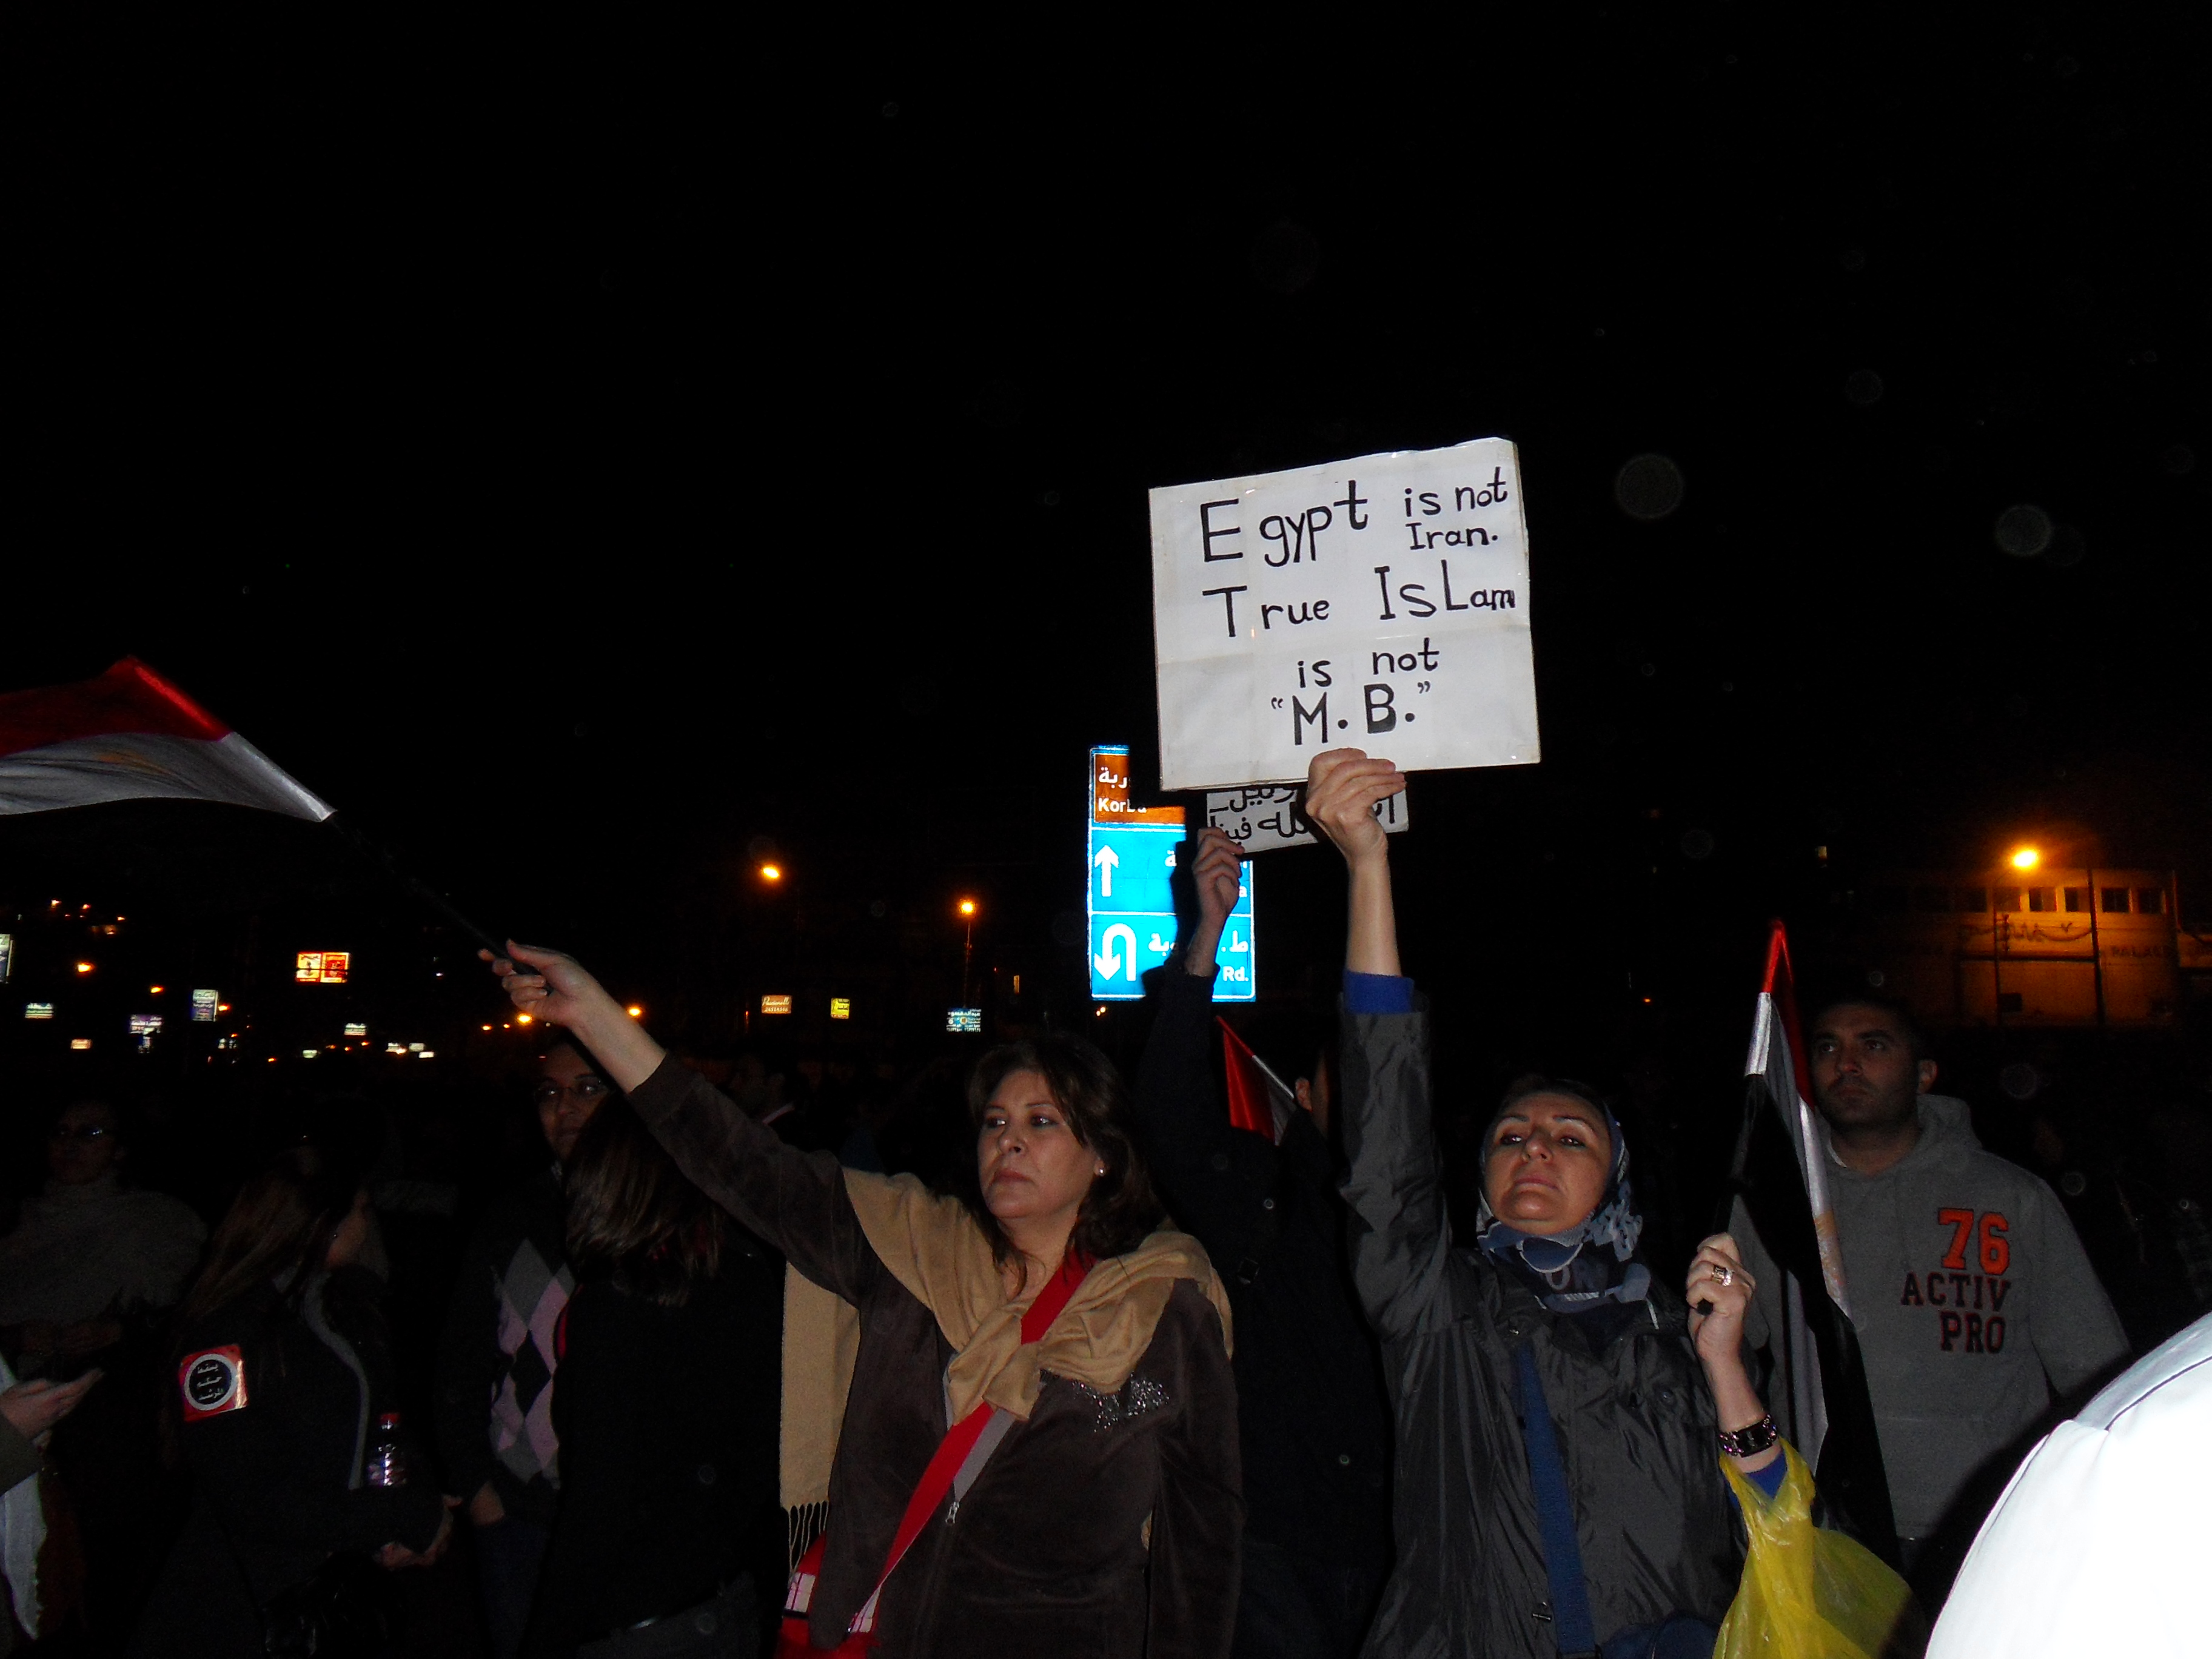 The women protesters were very passionate tonight and made sure their voices were being heard.